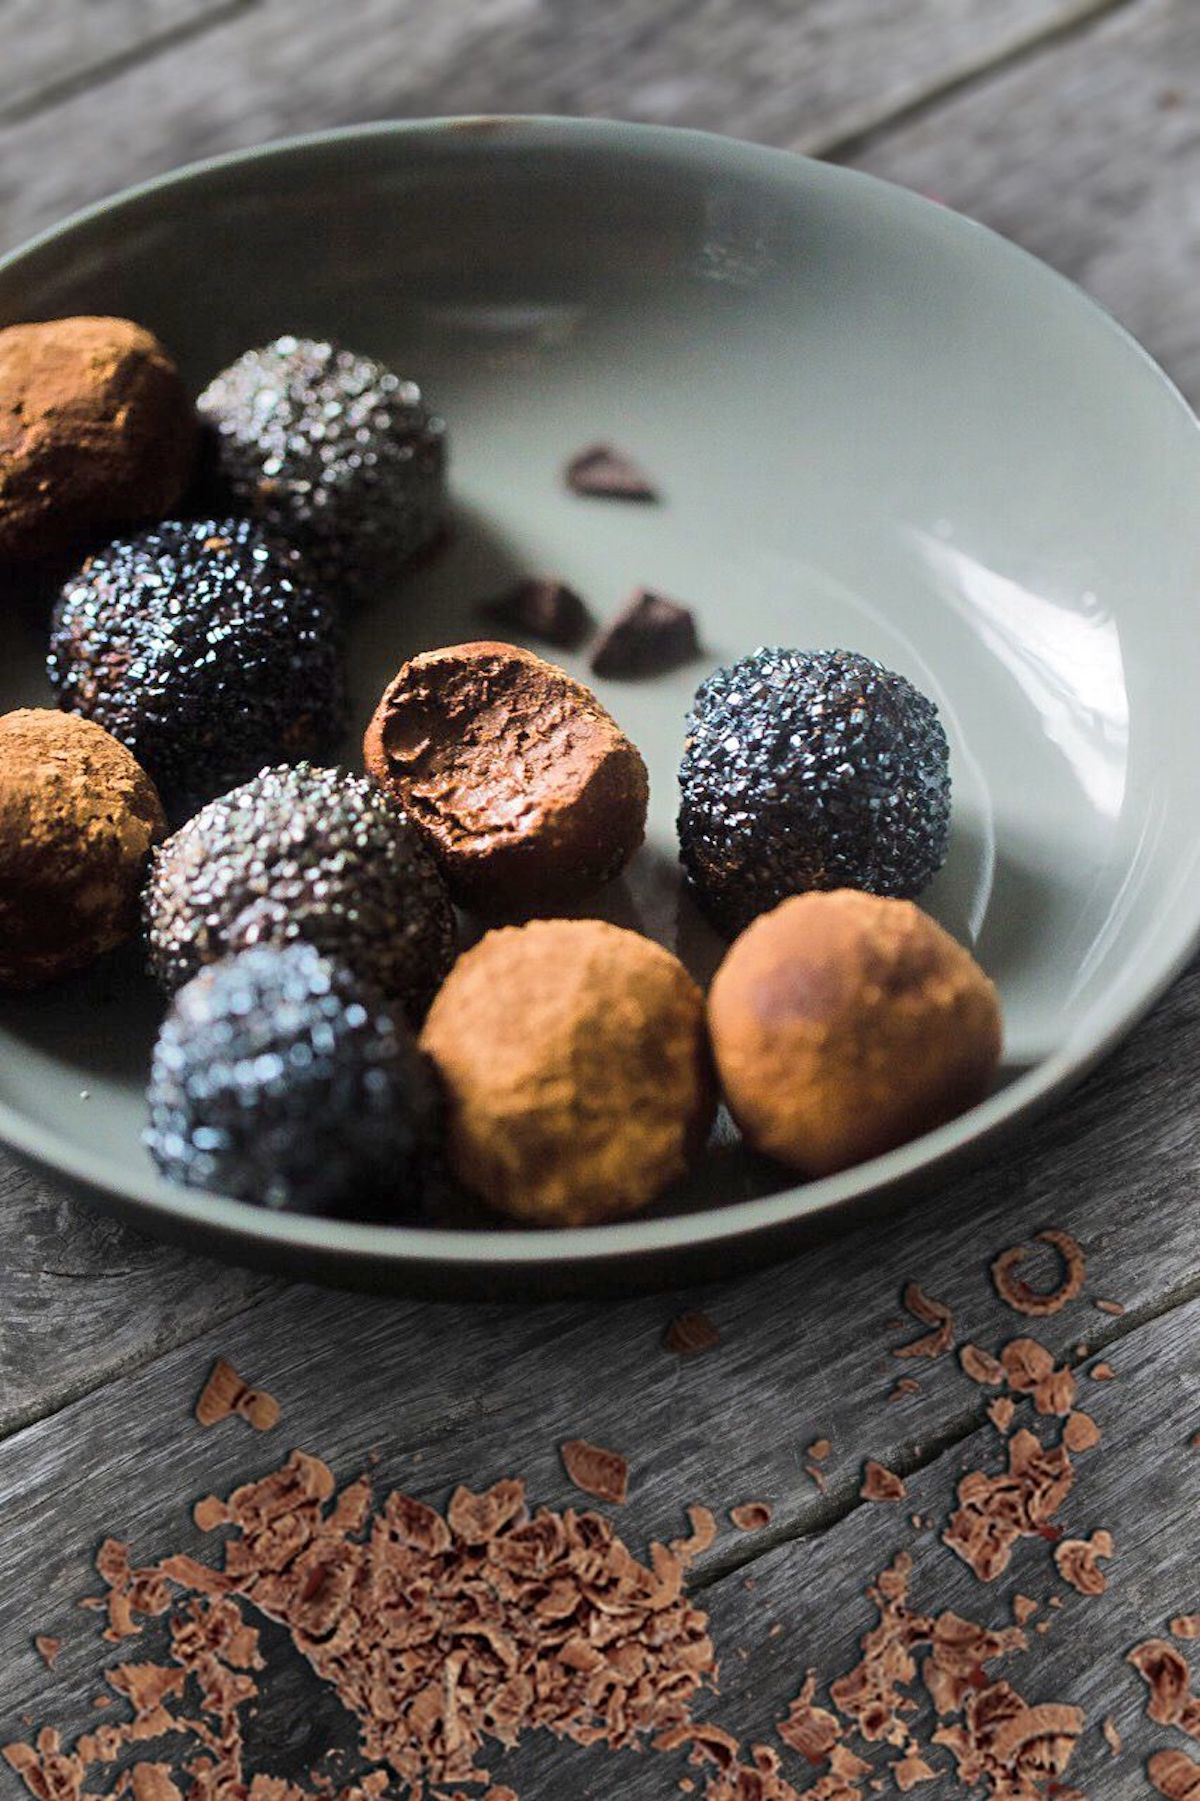 Easy Chocolate Truffles (Paleo, Refined Sugar Free)